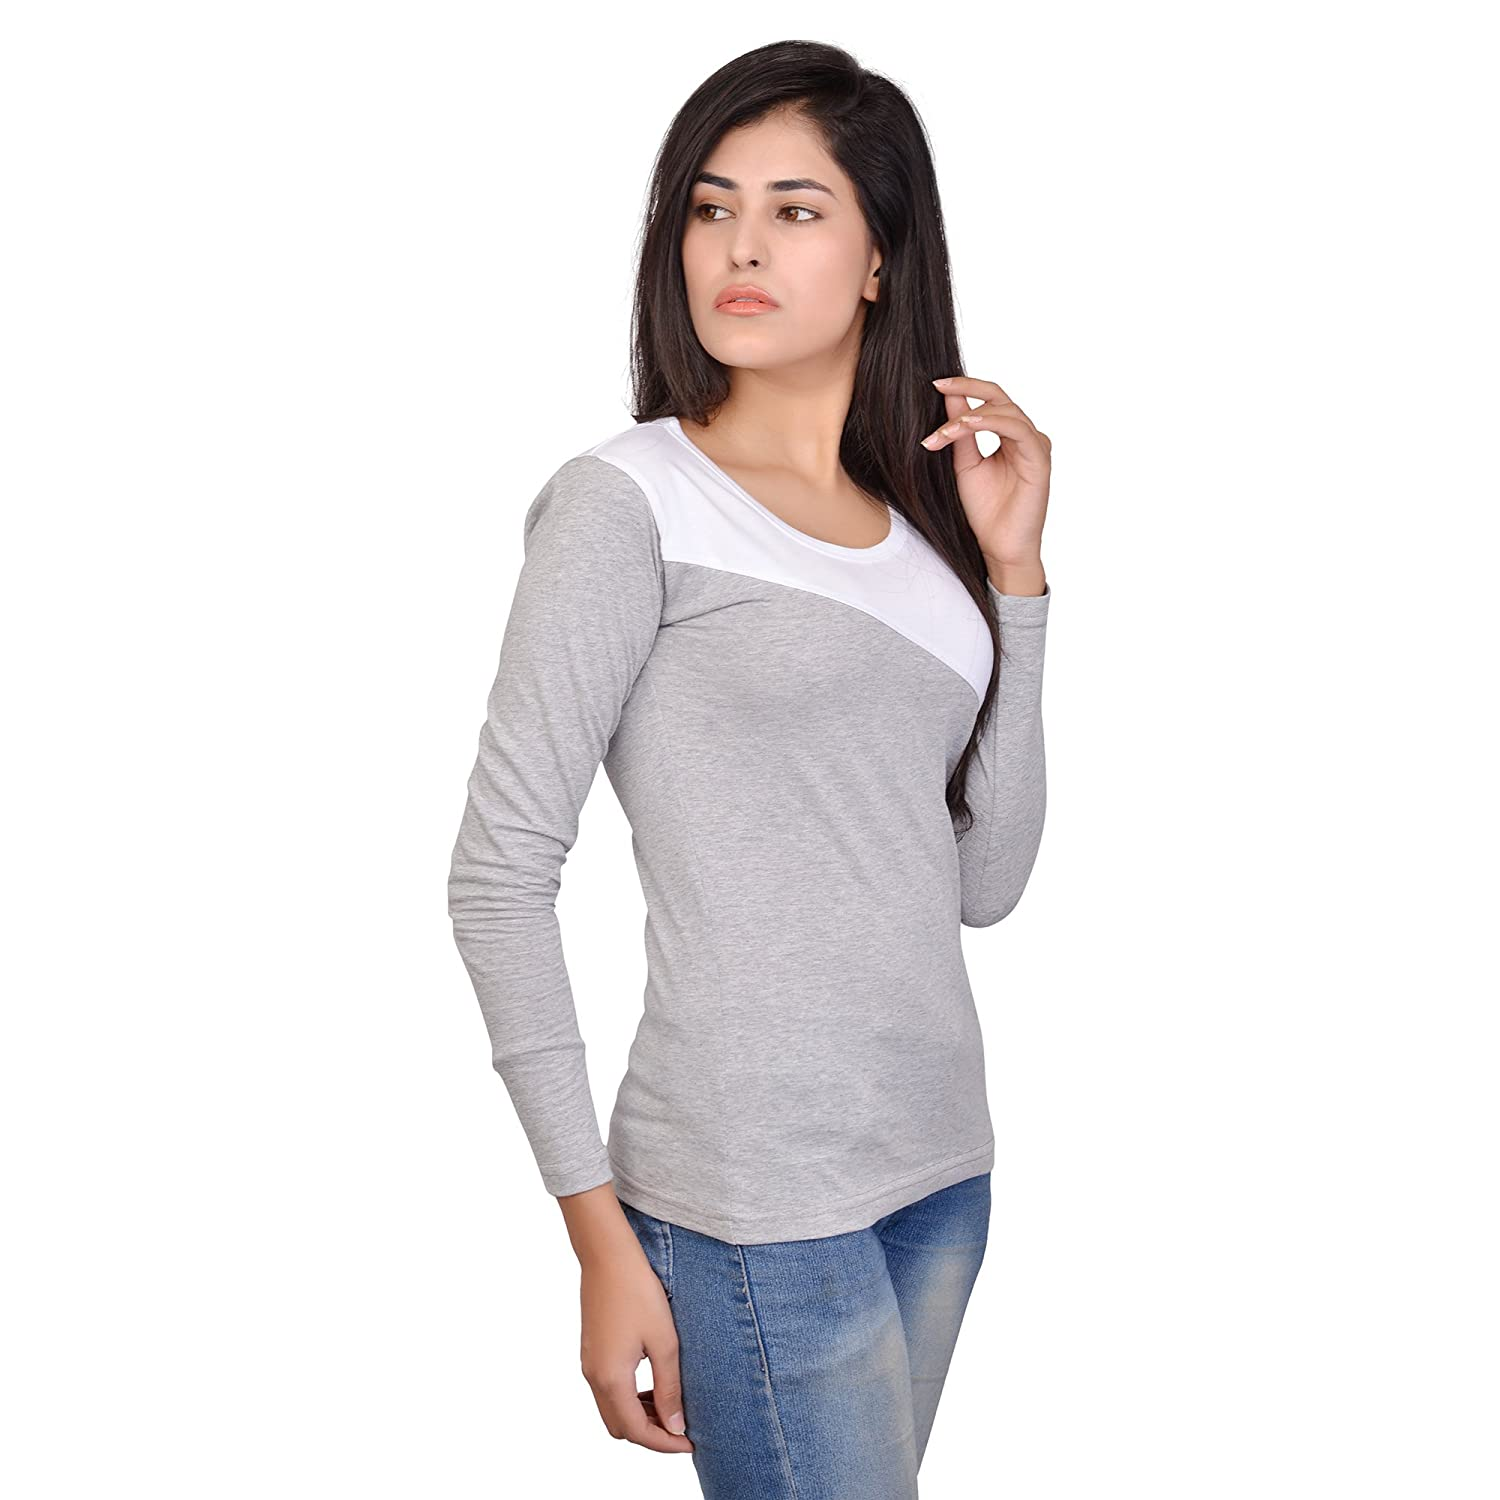 99ff2f15841 Fubura Womens Cotton Casual T-Shirts Round Neck Full Sleeve with Grey White  Colour  Amazon.in  Clothing   Accessories